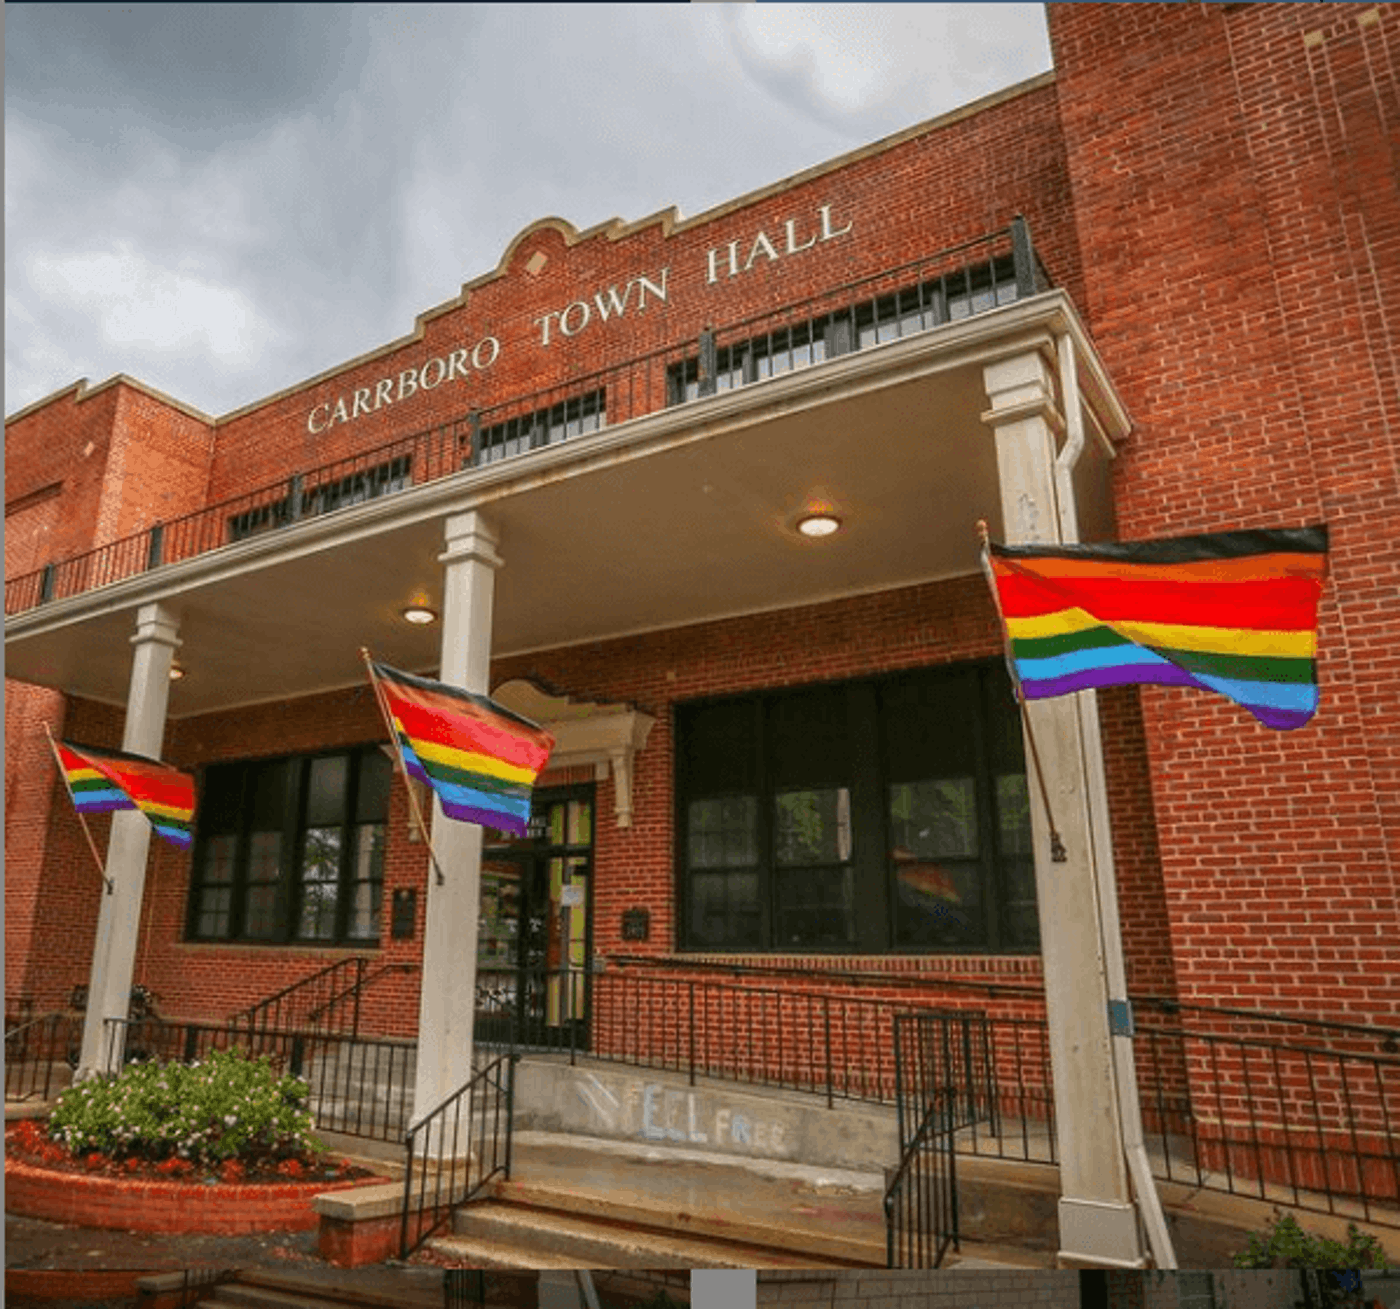 The town of Carrboro passed protections for those who identify as LGBTQ because federal action has stalled. (Image via Town of Carrboro/Instagram)